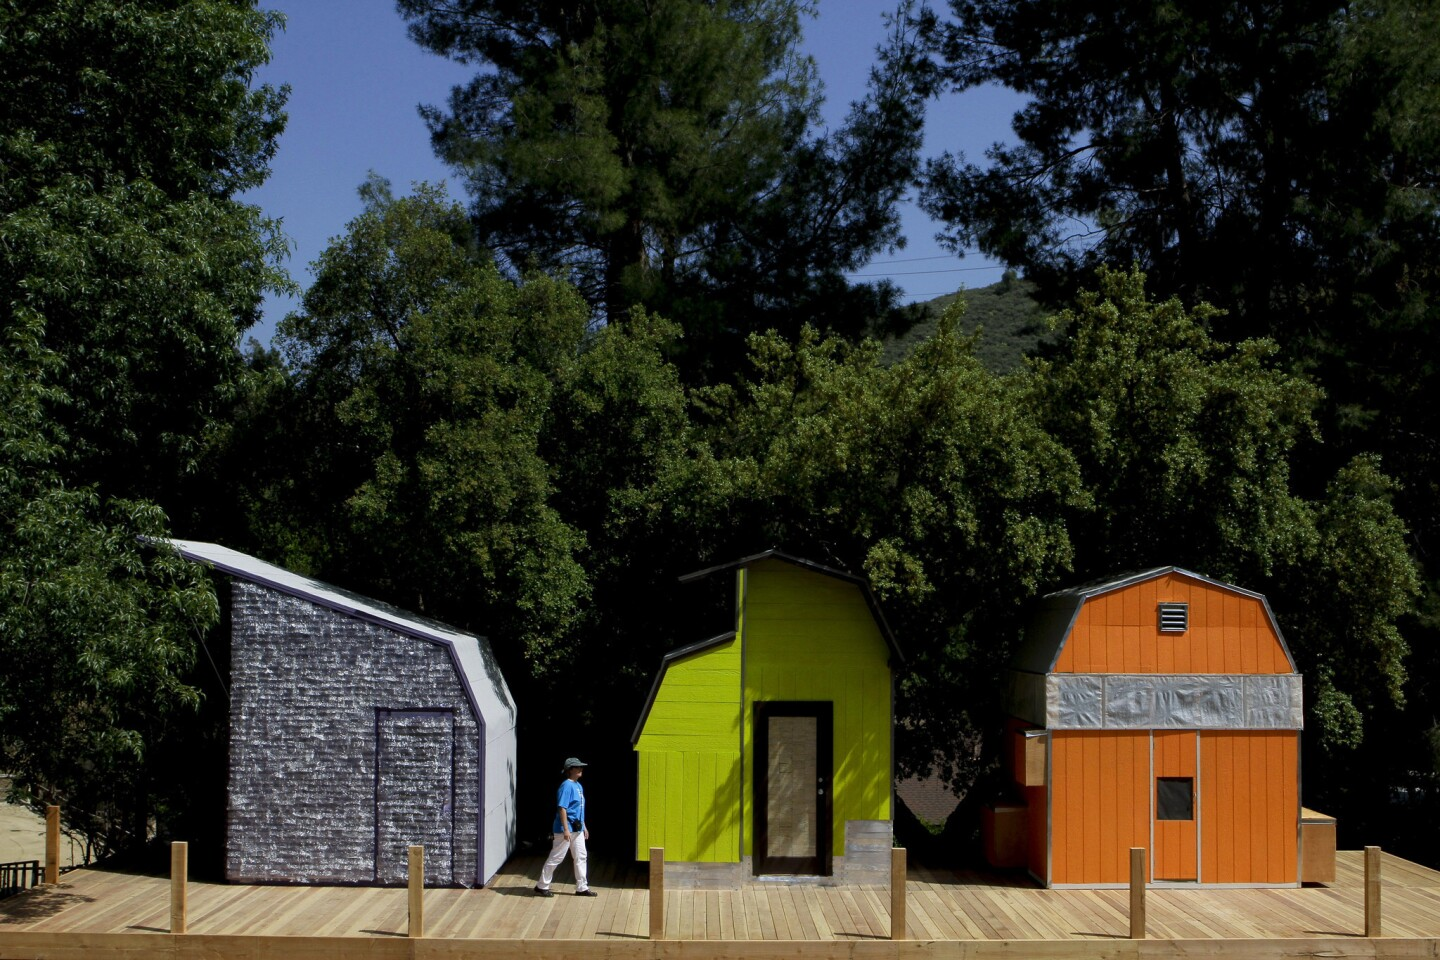 By Lisa Boone Woodbury architecture students transformed 10-by-10-foot sheds into clever and colorful accommodations set up at the Shadow Hills Riding Club equestrian center. The sheds had to be tweaked to provide light, ventilation, insulation and sleeping space for two. And though the teams each had a budget of $1,500 for additional supplies, they also had a mandate to experiment with one assigned material. Pictured here are the cabins from the plastic team, left, the wood team and the paper team.